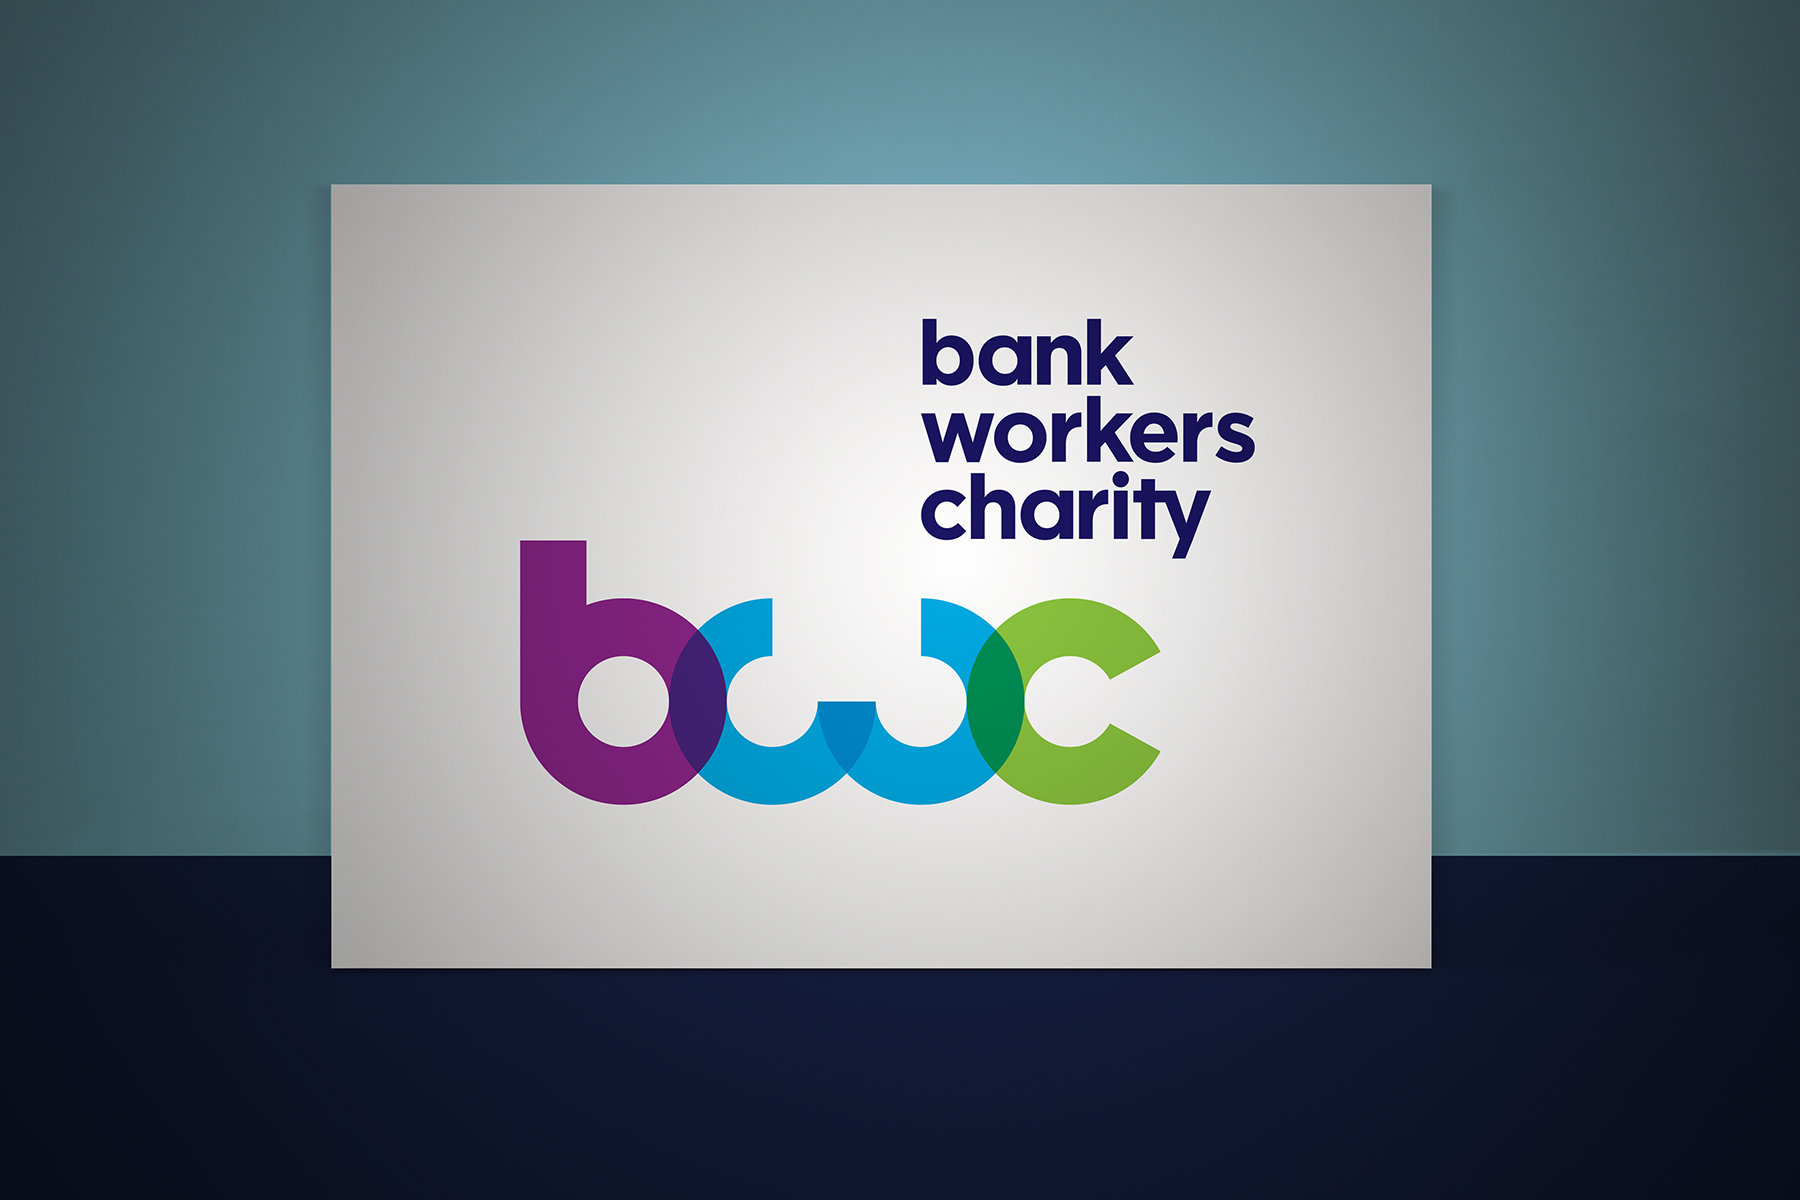 The Bank Workers Charity brand mark is constructed purely out of circular shapes. The transparency and colour creates a modern yet approachable feel.